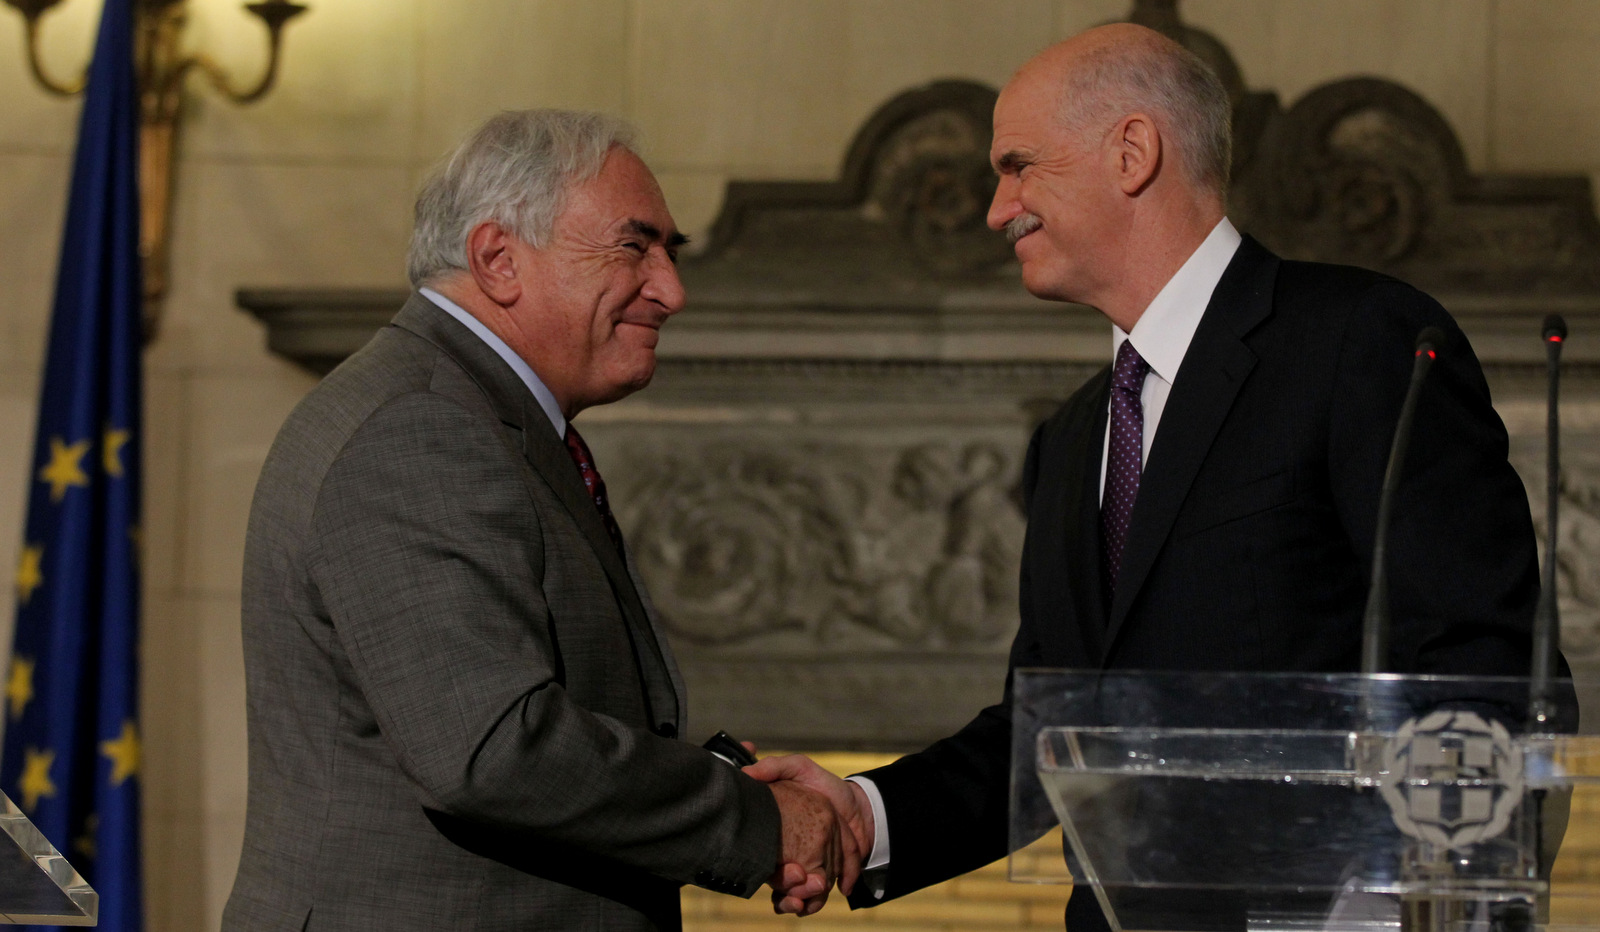 Greek Prime Minister George Papandreou, right, shakes hand with the head of the International Monetary Fund, Dominique Strauss-Kahn, during a joint news conference in Athens, Dec. 7, 2010. (AP/Thanassis Stavrakis)